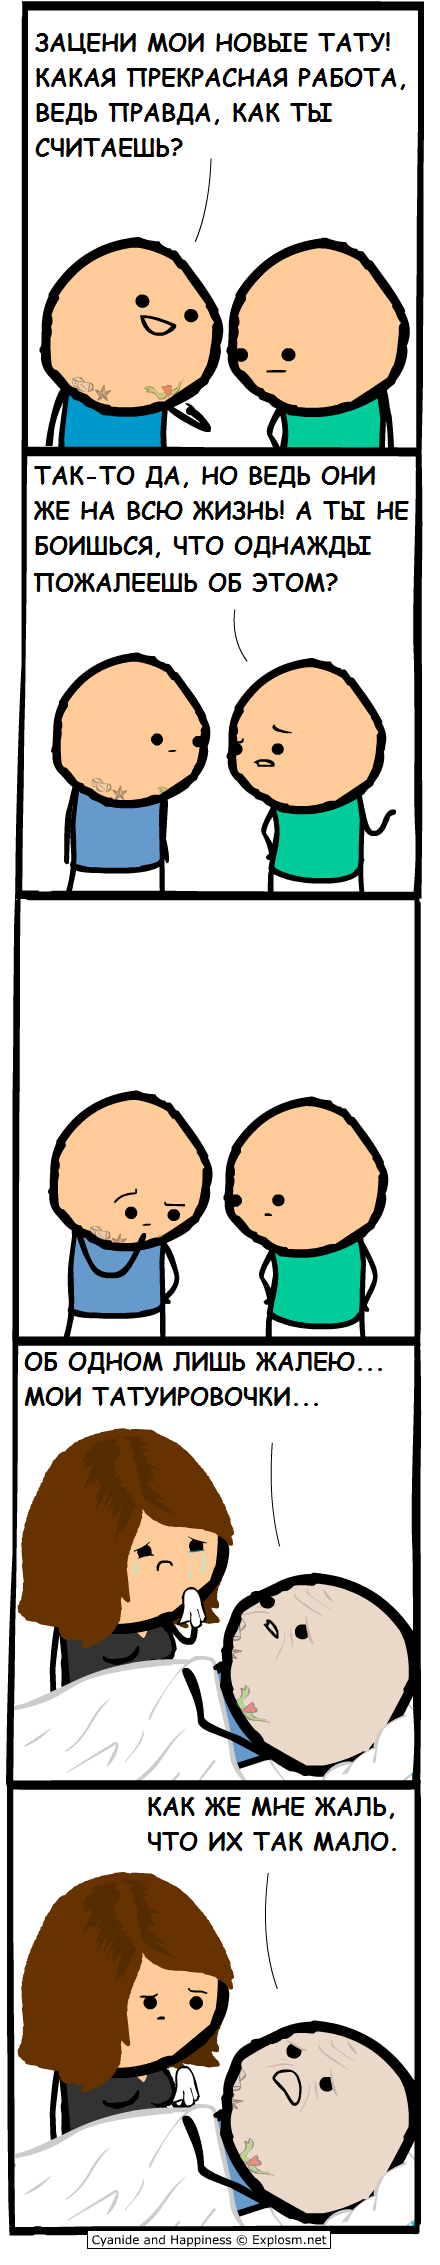 ���� �������, Cyanide and happiness, ����, �������, ����������